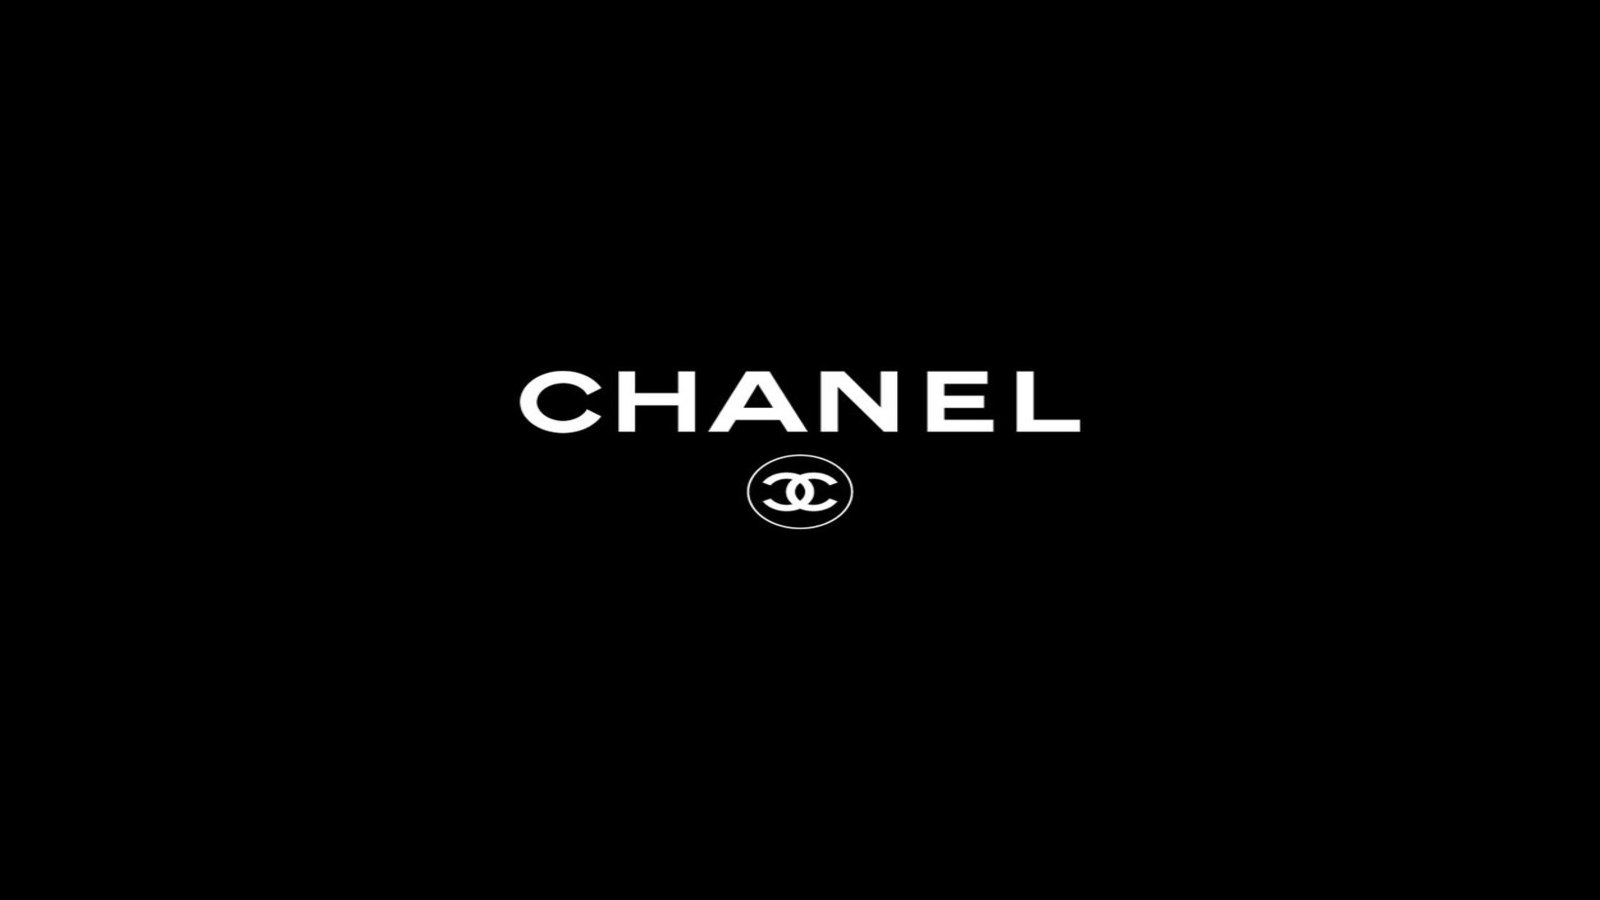 Chanel Computer Wallpapers Desktop Backgrounds 1600x900 ID436328 1600x900